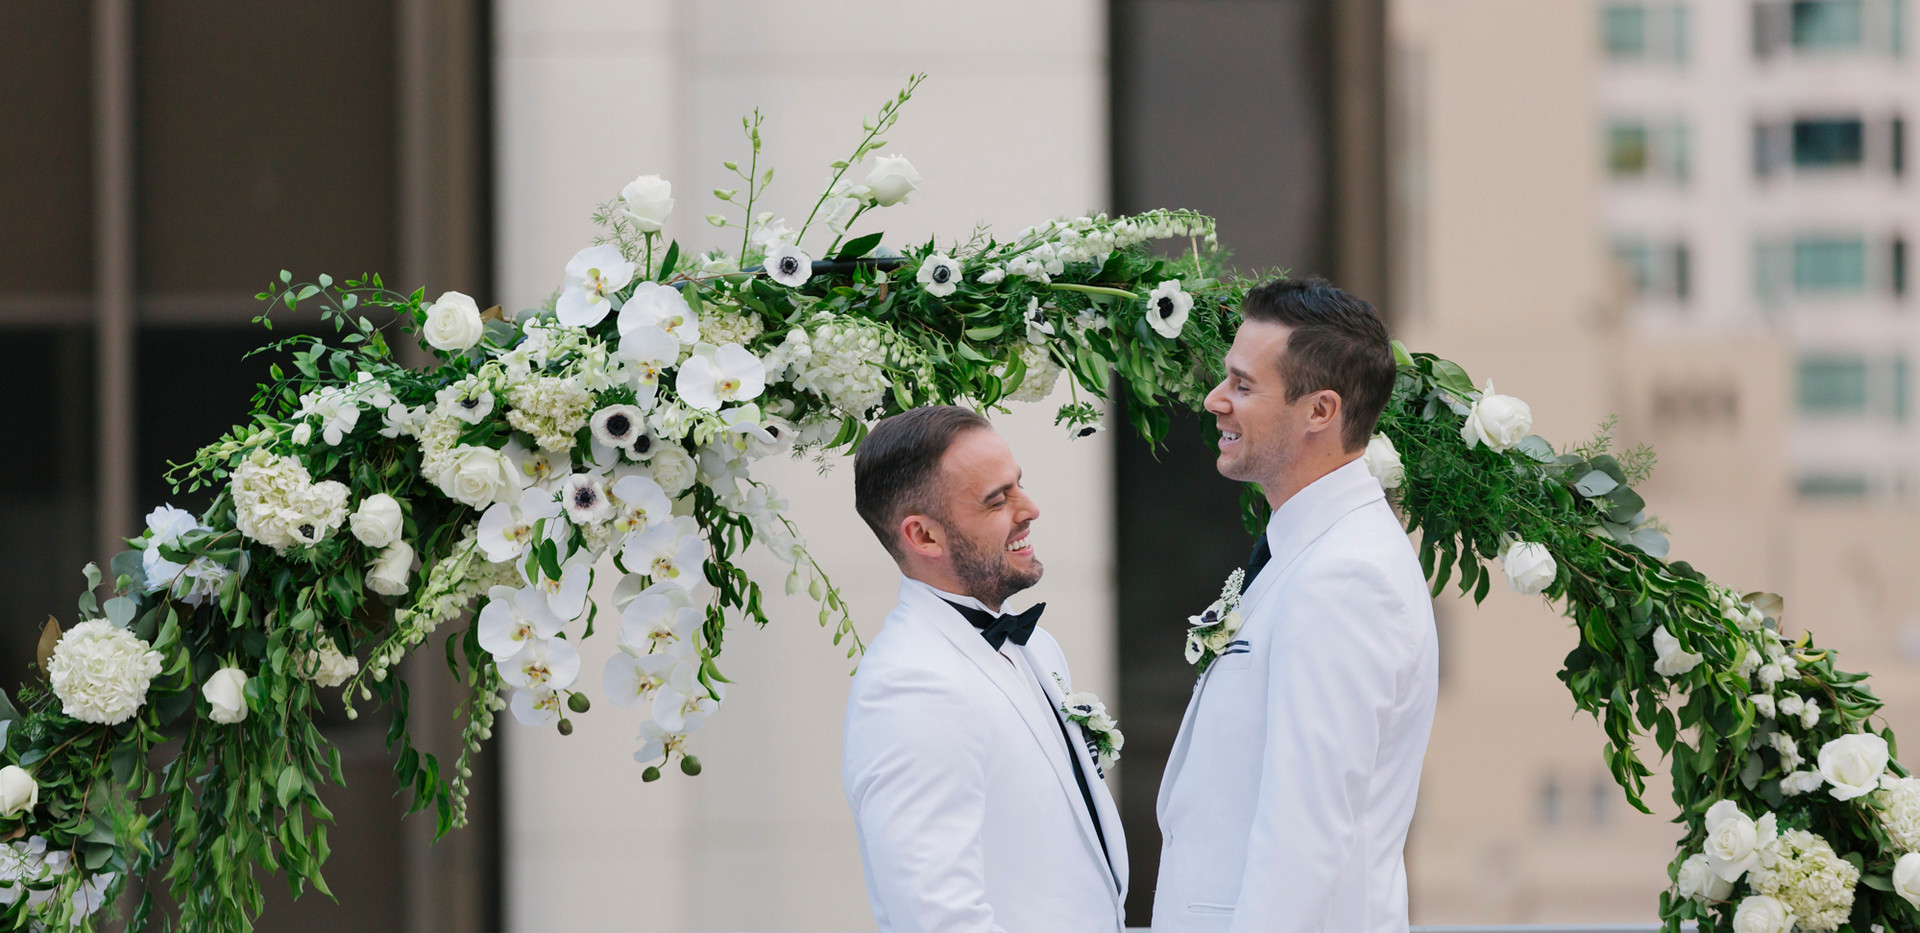 White and Green Floral Wedding Arch